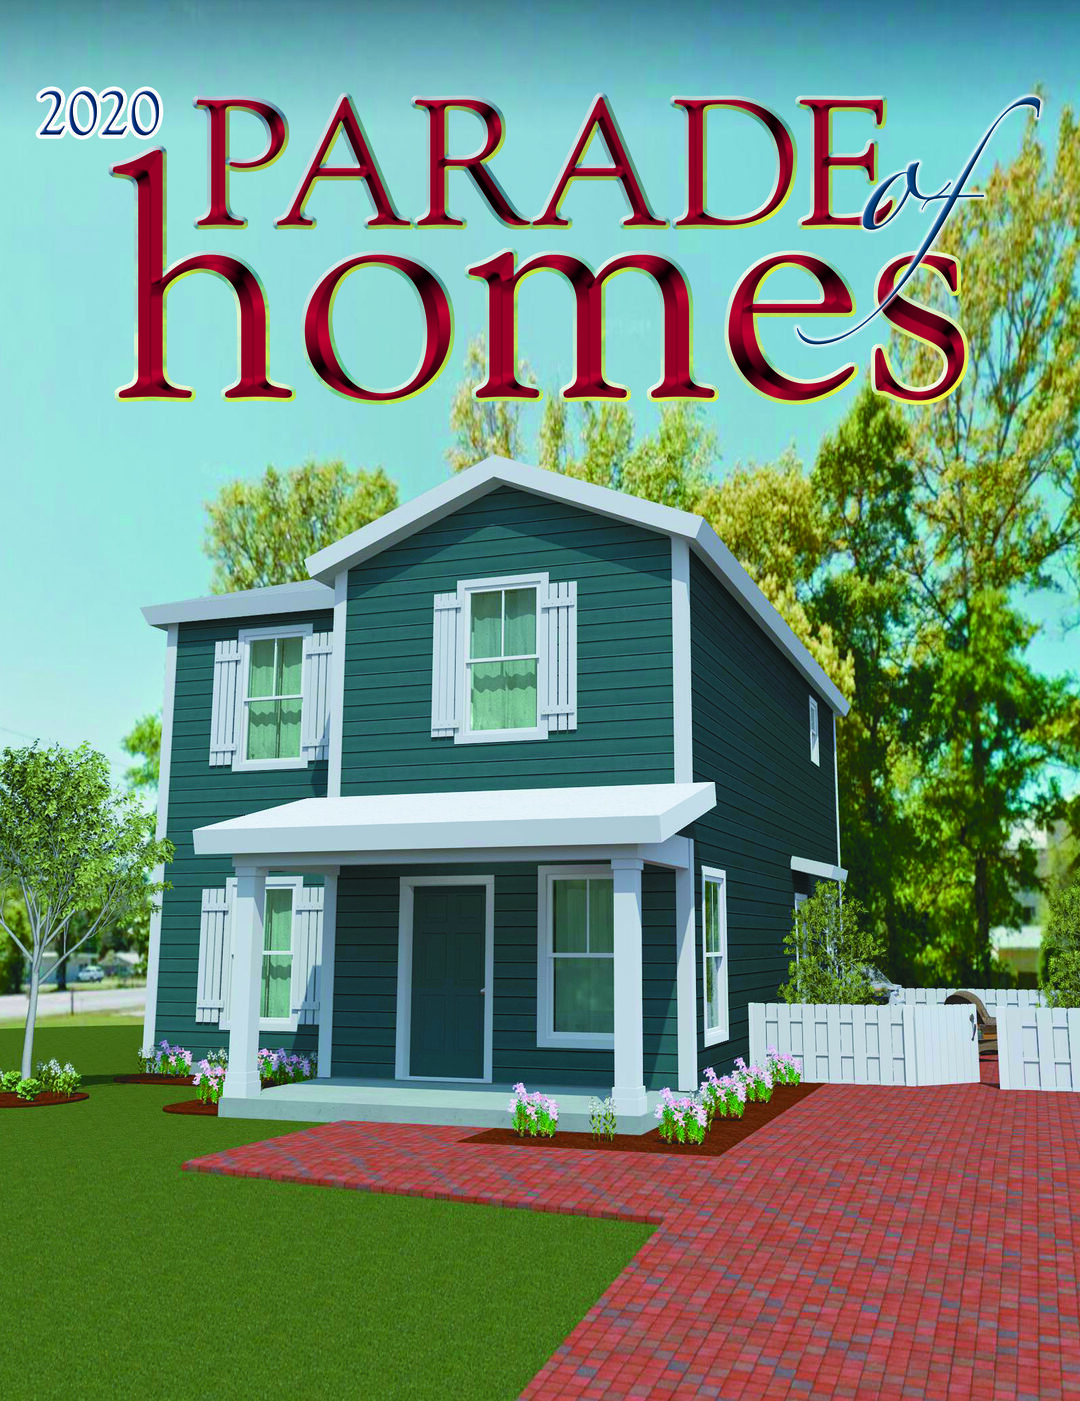 Page 1 of 2020 Great American Parade of Homes